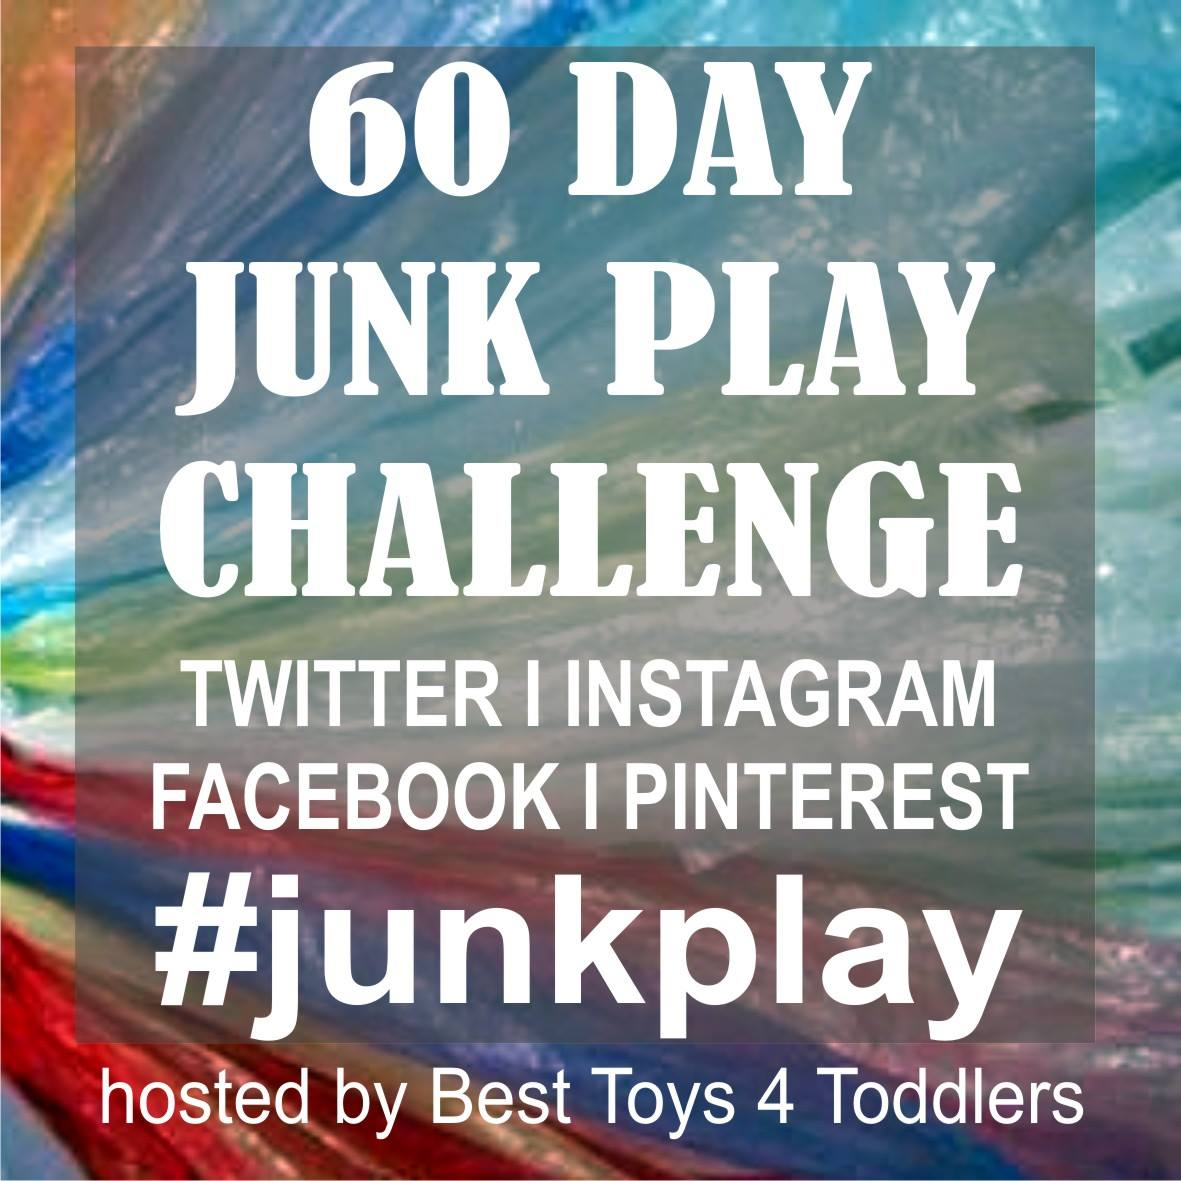 60 days of junkplay